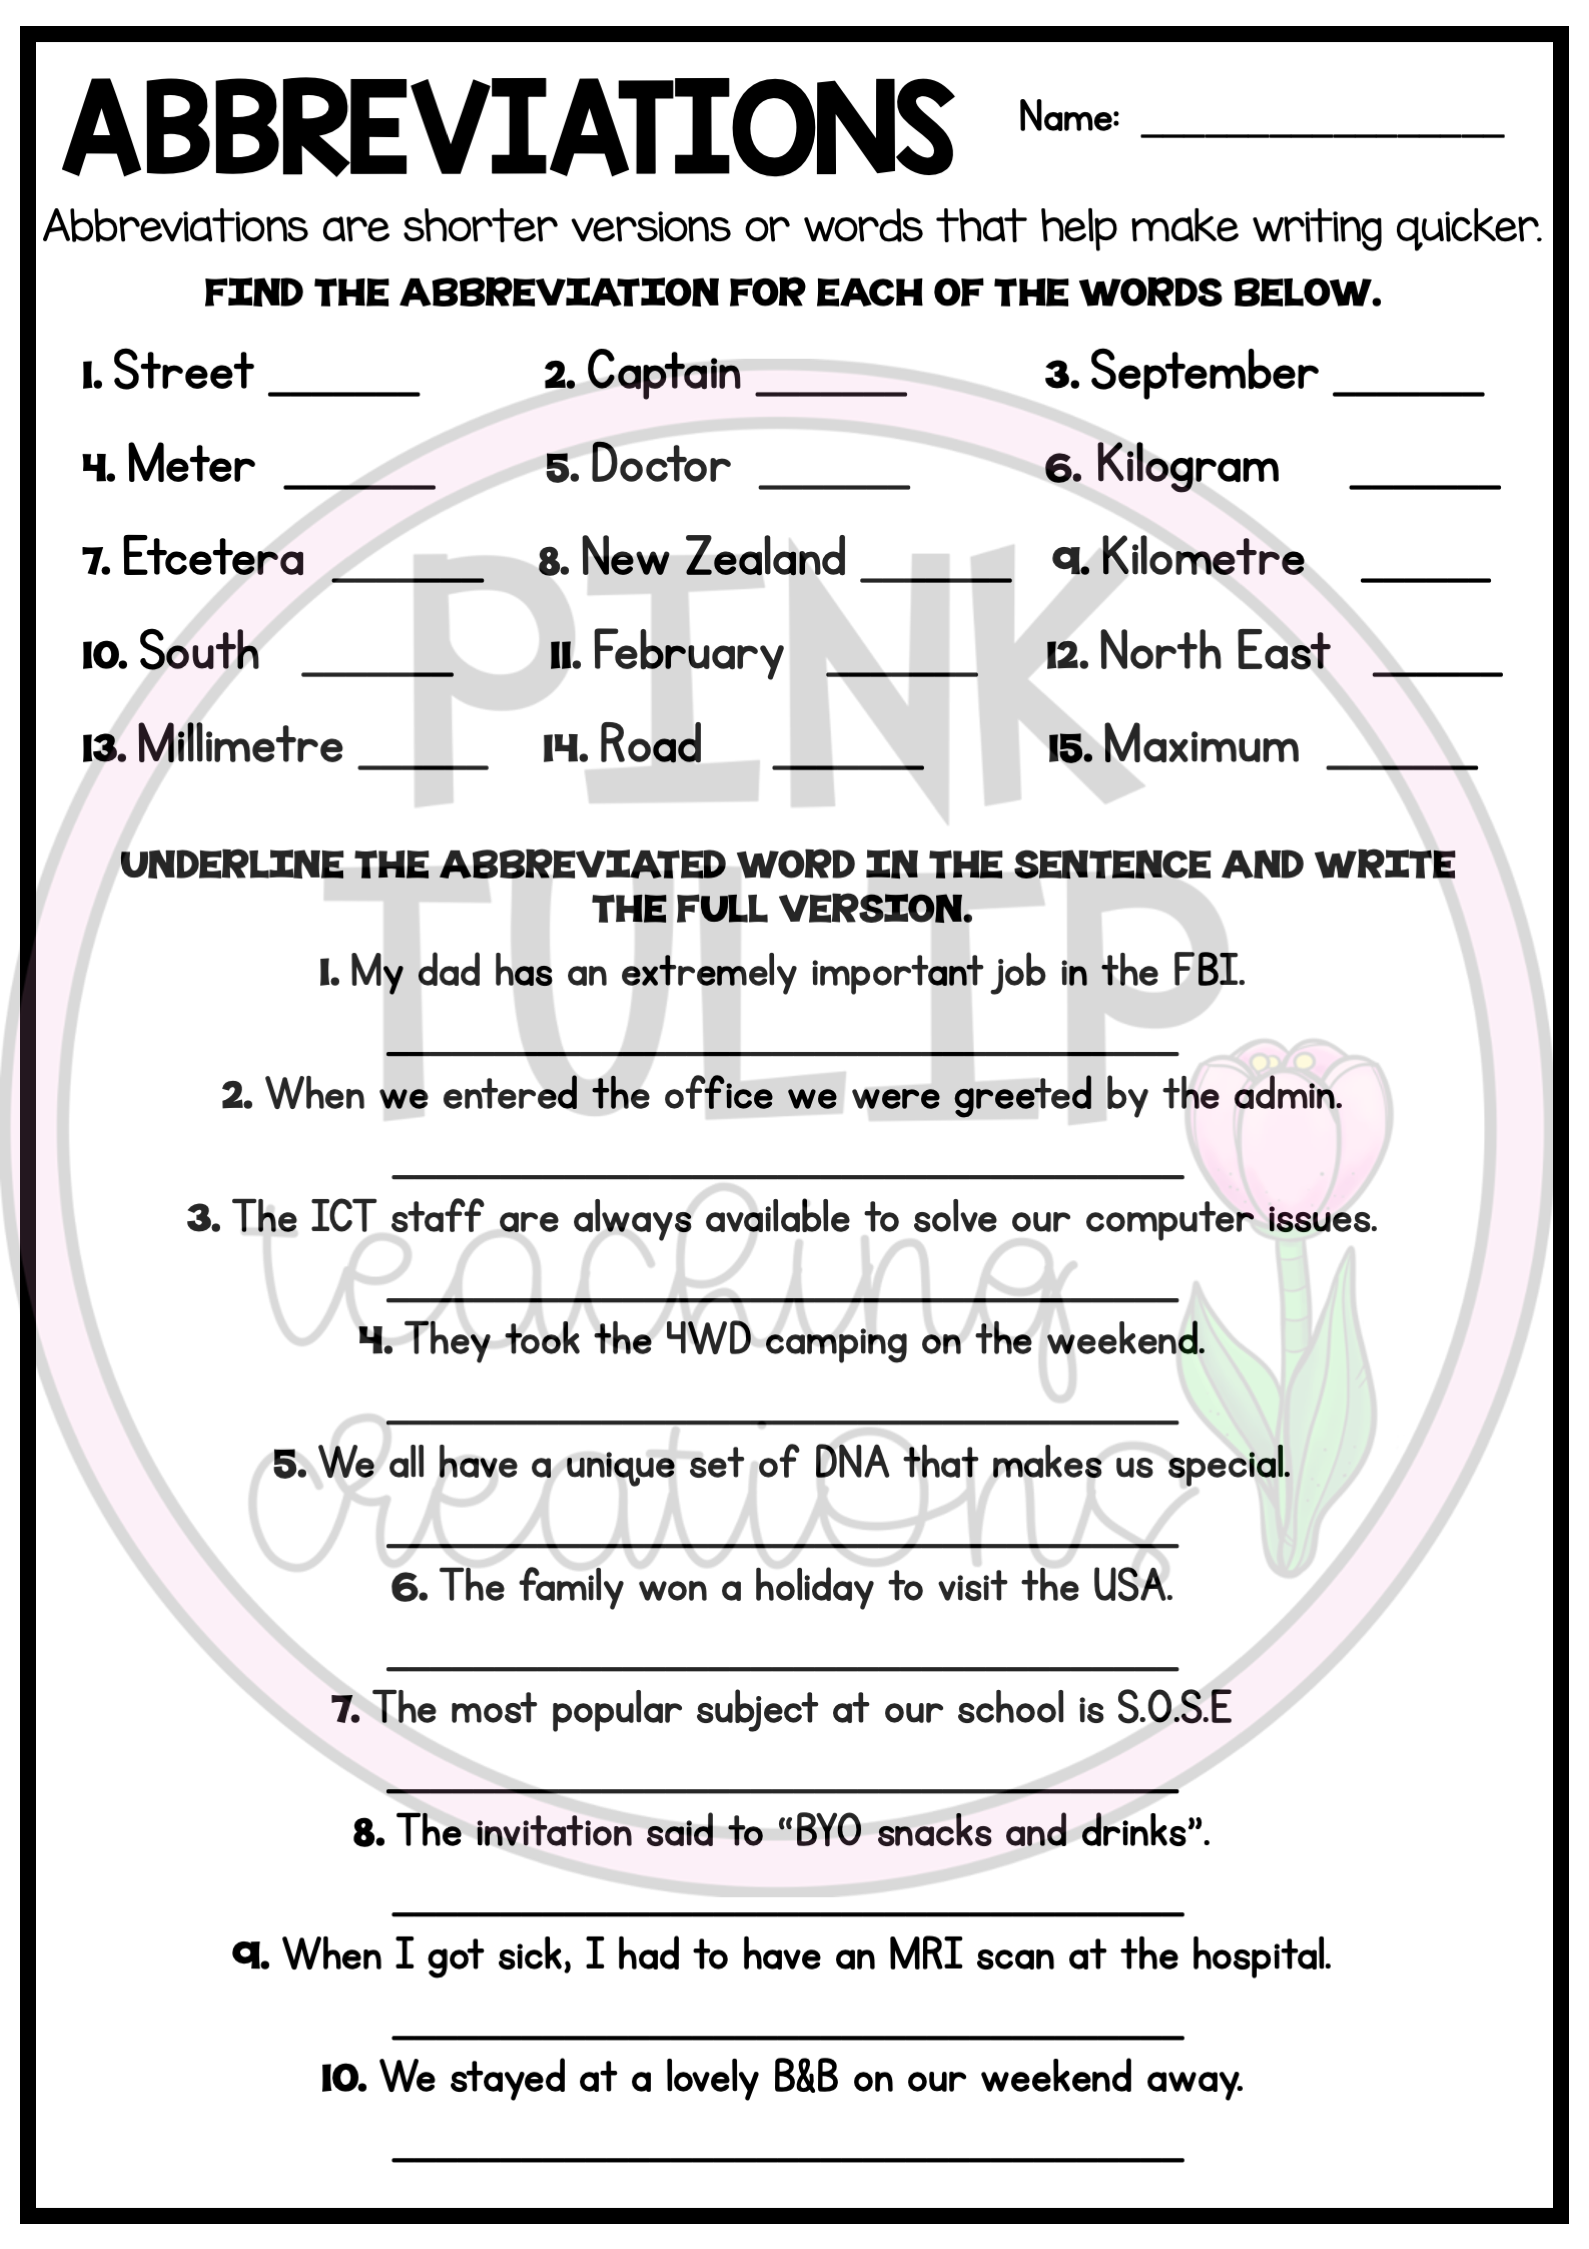 hight resolution of Abbreviations Worksheets Printable   Printable Worksheets and Activities  for Teachers